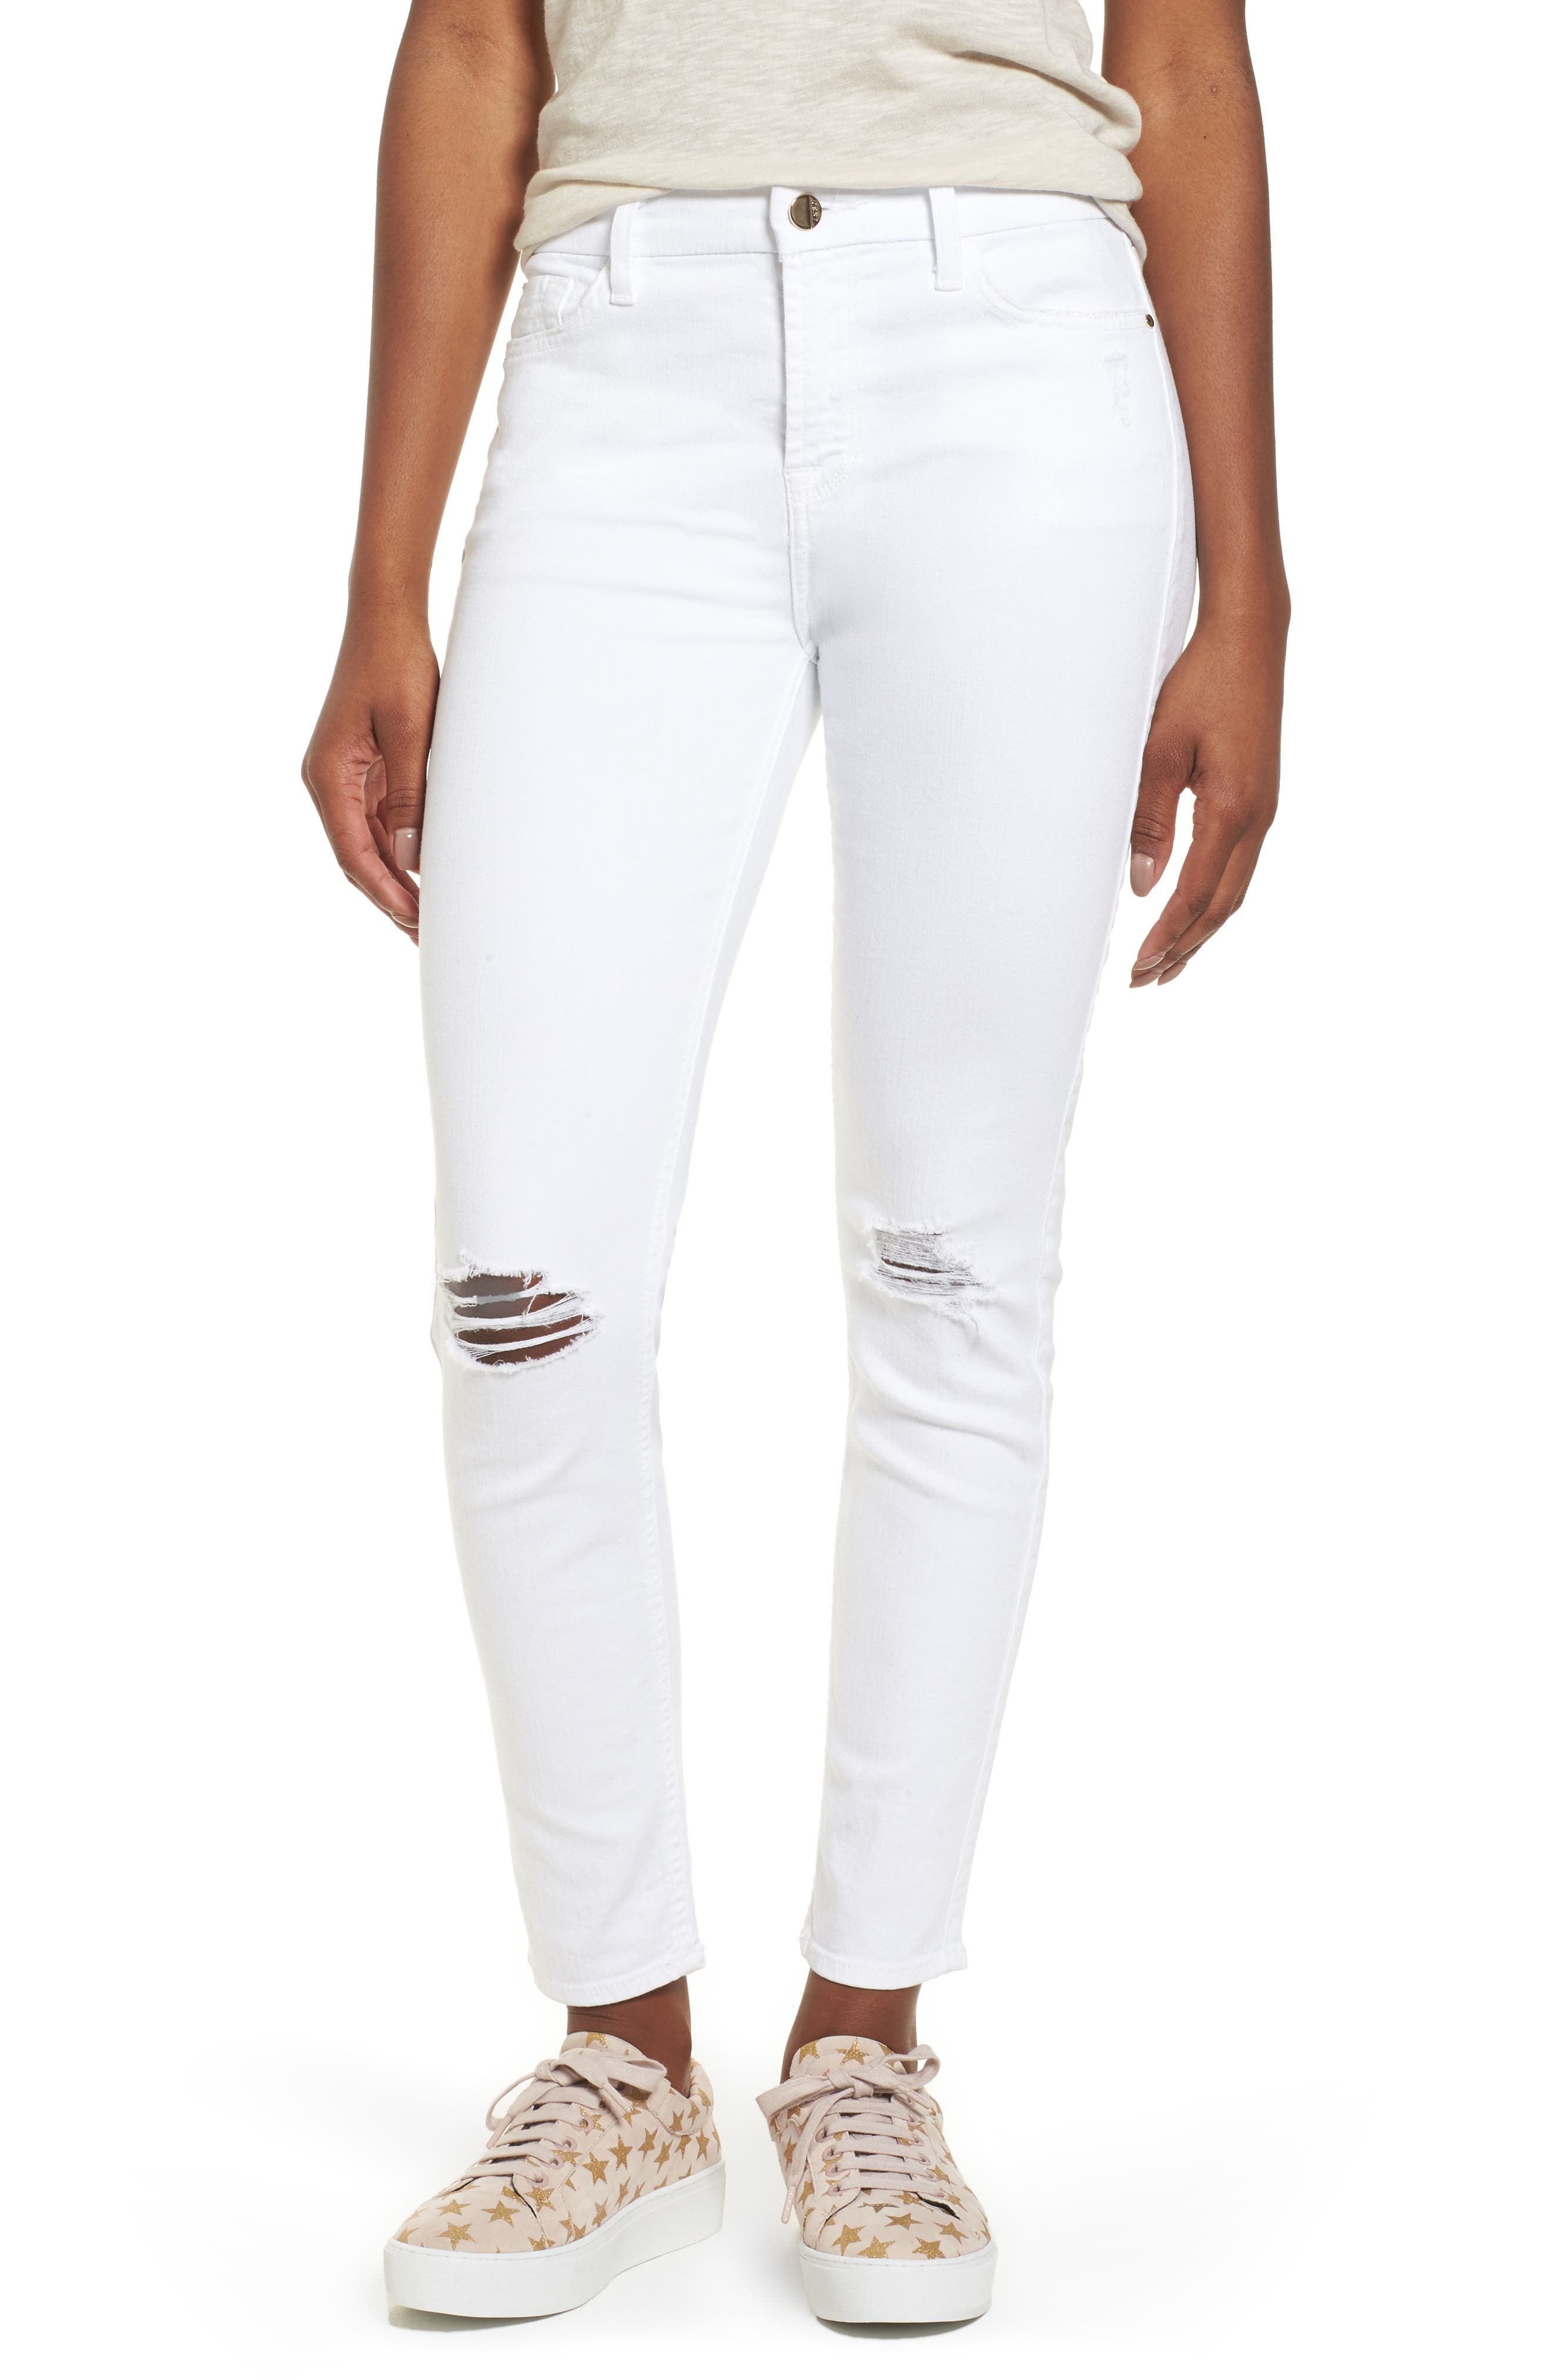 JEN7 BY 7 FOR ALL MANKIND,                             Ankle Skinny Jeans,                             Main thumbnail 1, color,                             WHITE 2